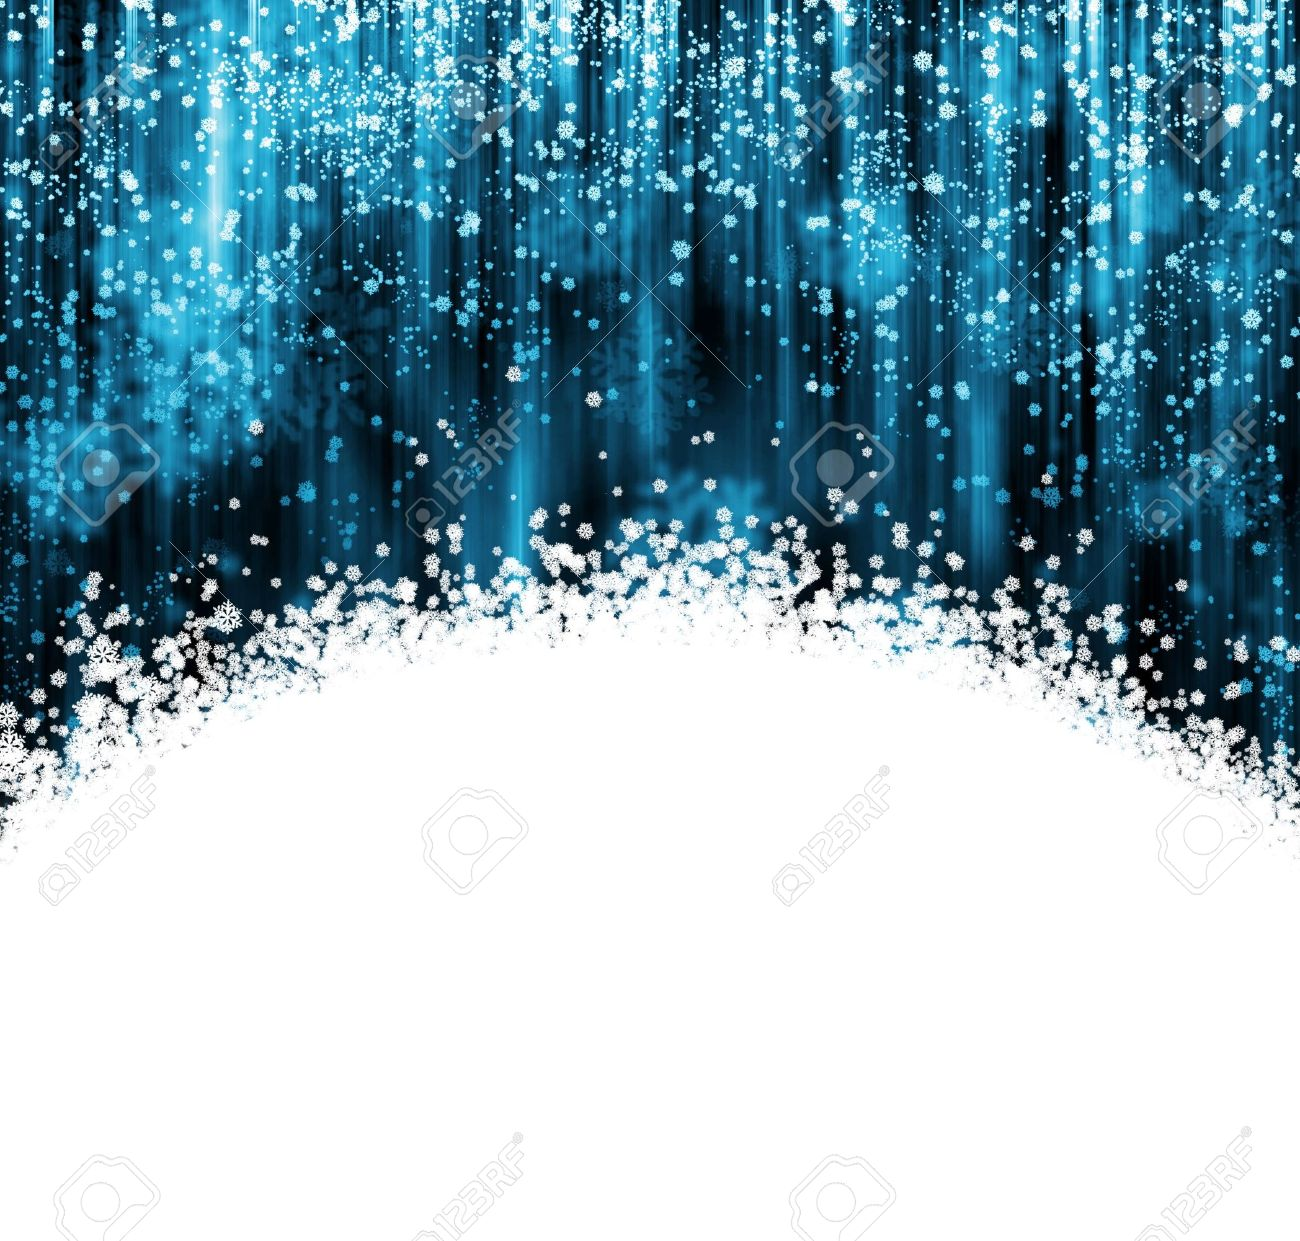 Blue and white Christmas background with snowflakes falling Stock Photo - 7678742